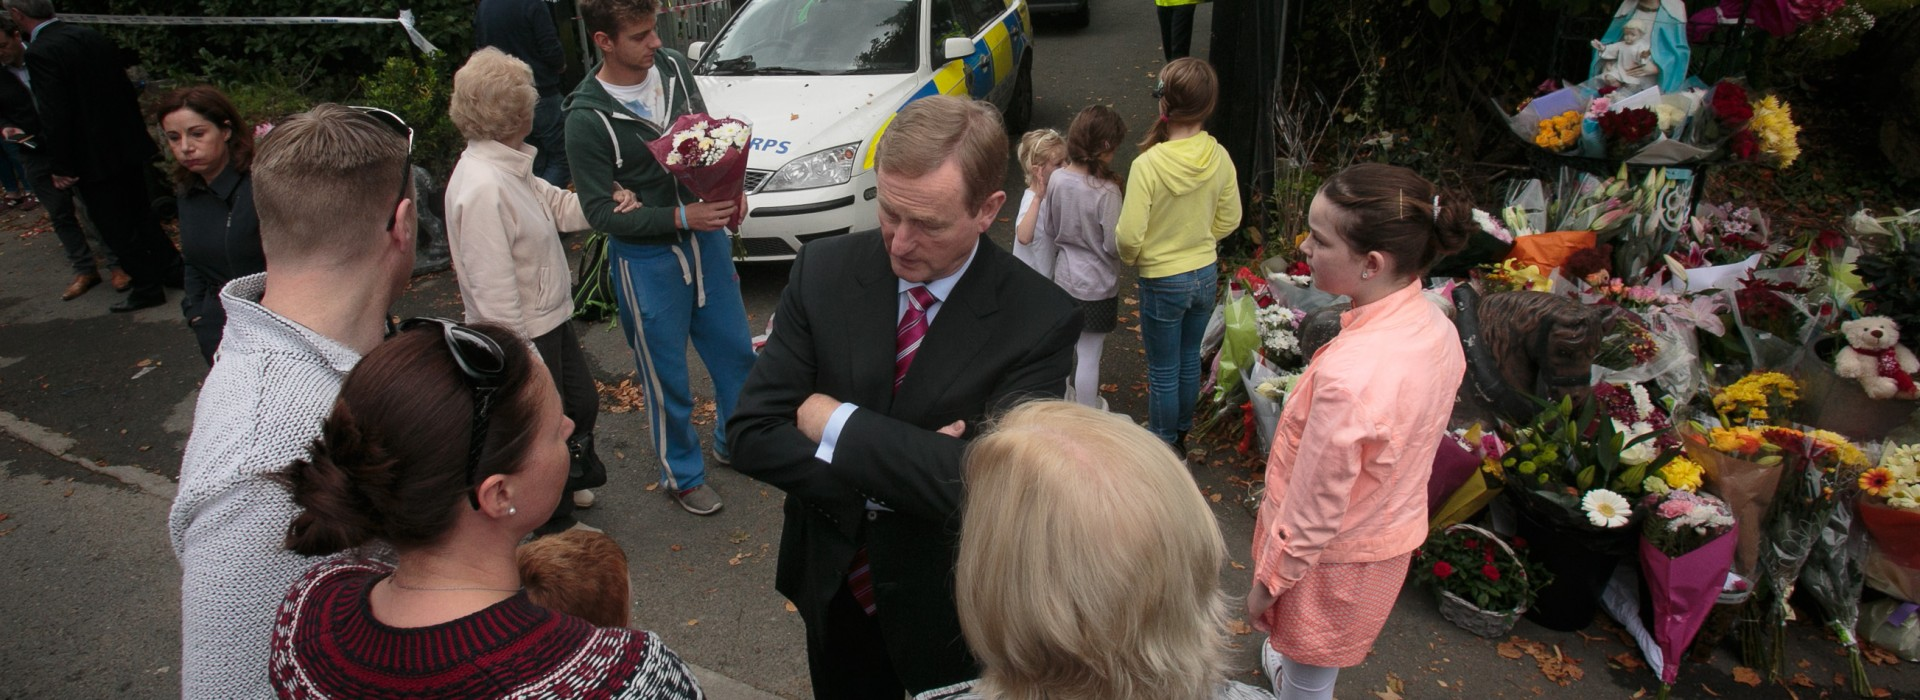 11/10/2015 Taosieach Enda Kenny TD speaking to members of the public at the scene of a fire which resulted in the deaths of 10 people at a halting site on Glenamuck Road South, Carrickmines , Dublin. Photo: Gareth Chaney Collins